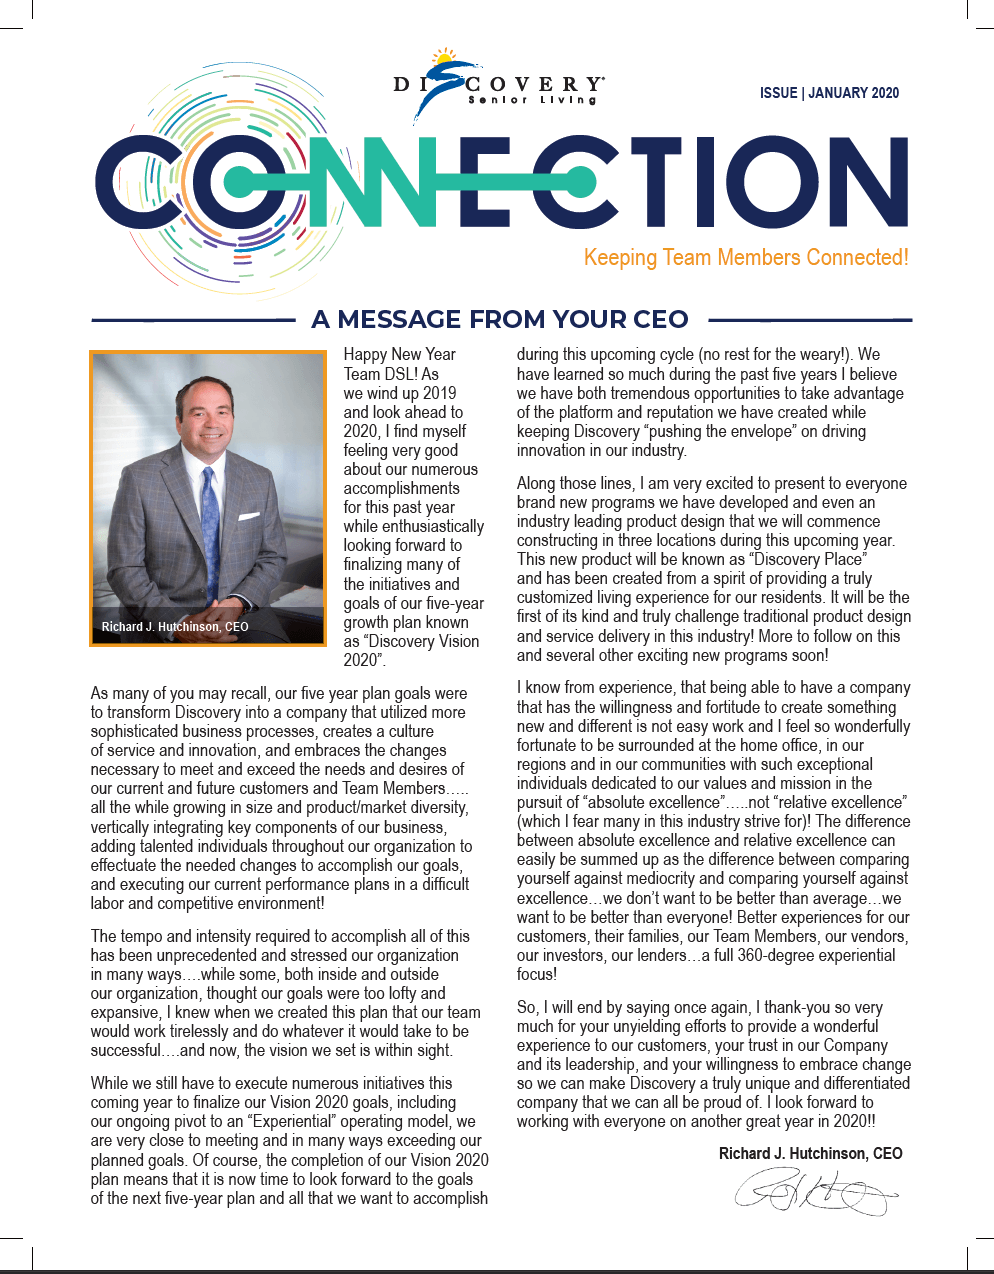 message from ceo in the latest senior living news